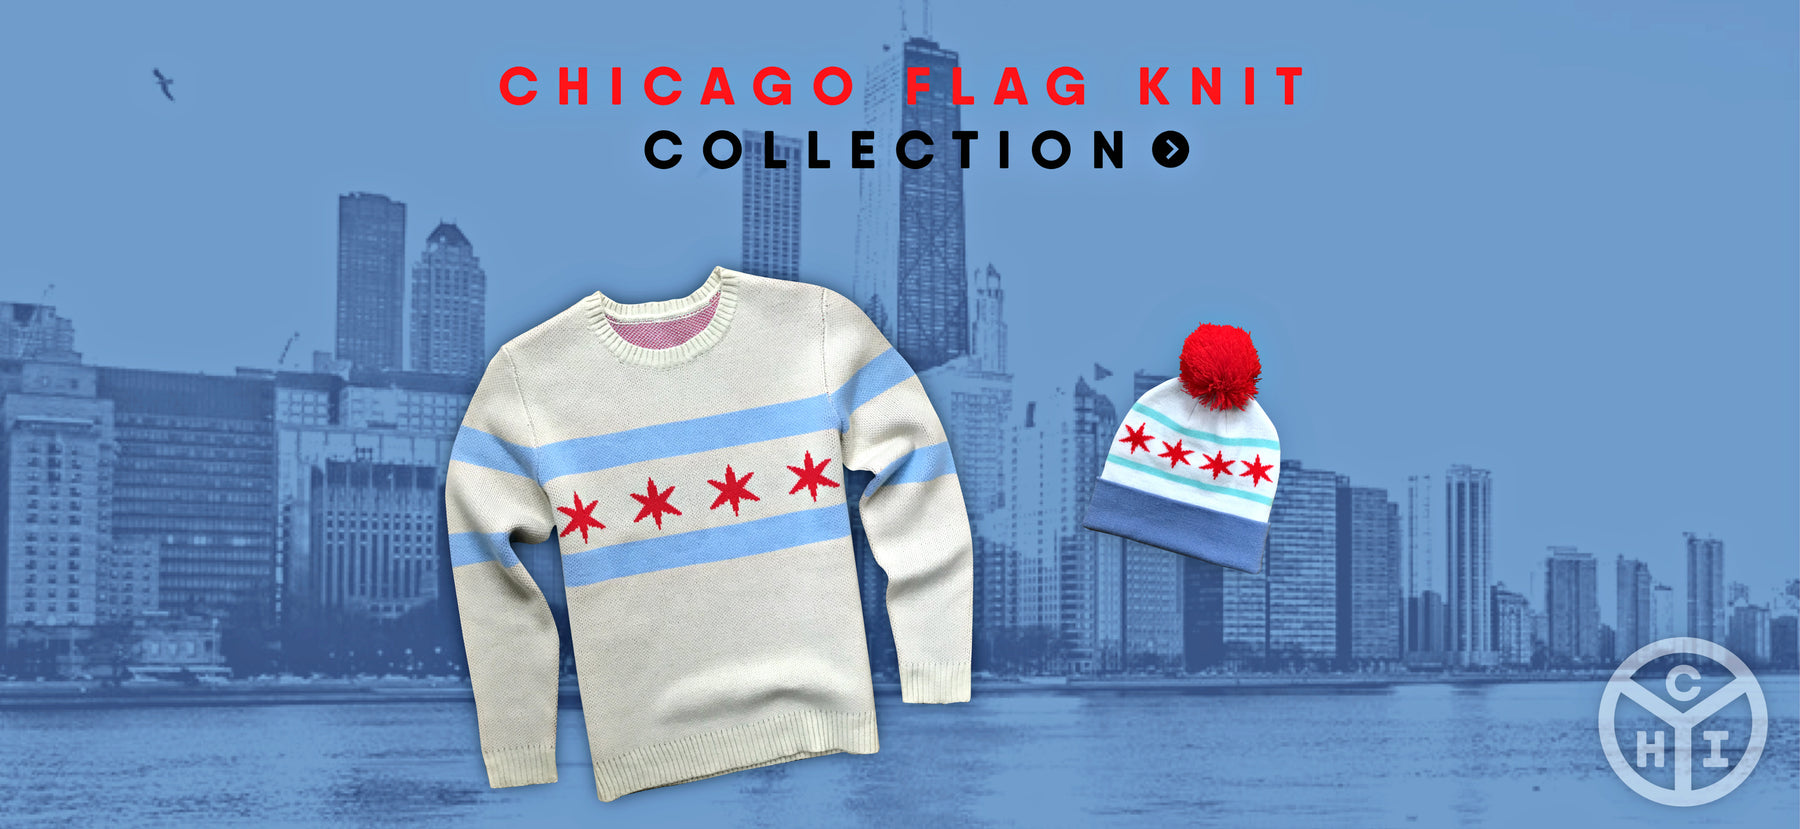 Chitown Clothing